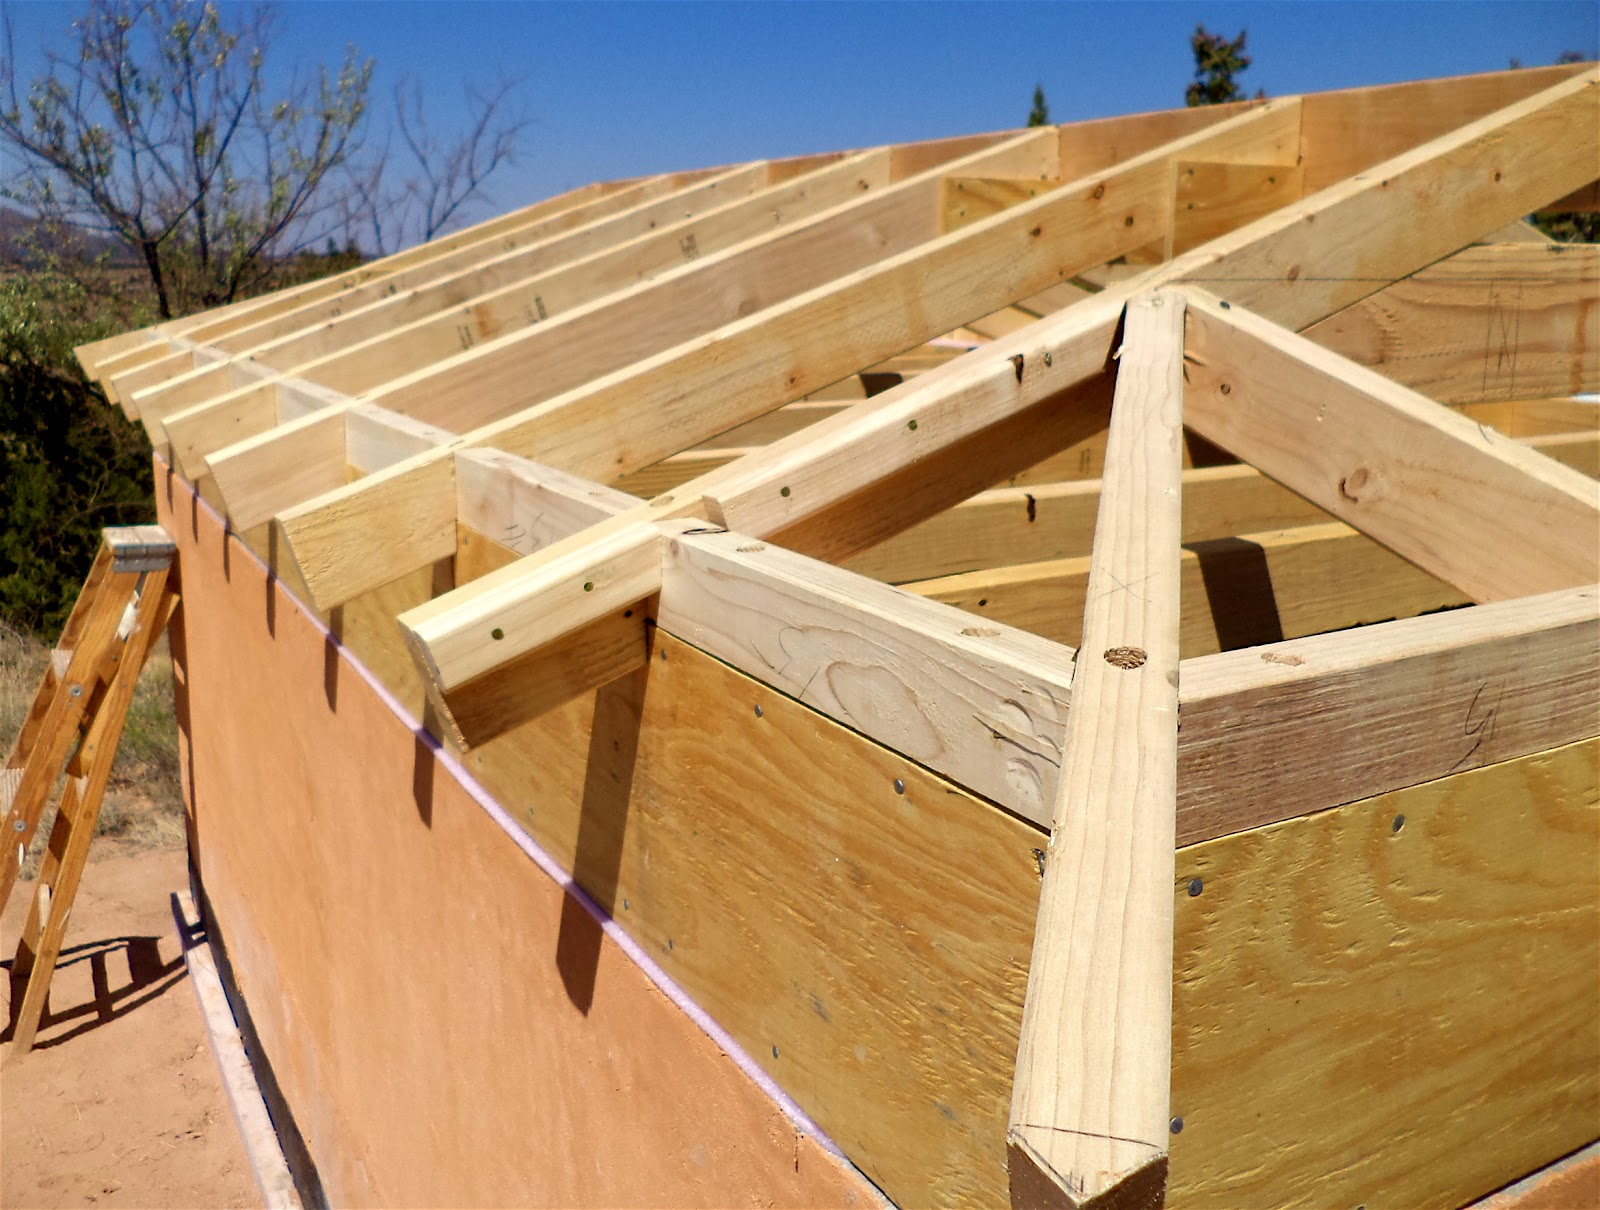 Alt build blog building a well house 4 framing the hip for Hip roof design plans